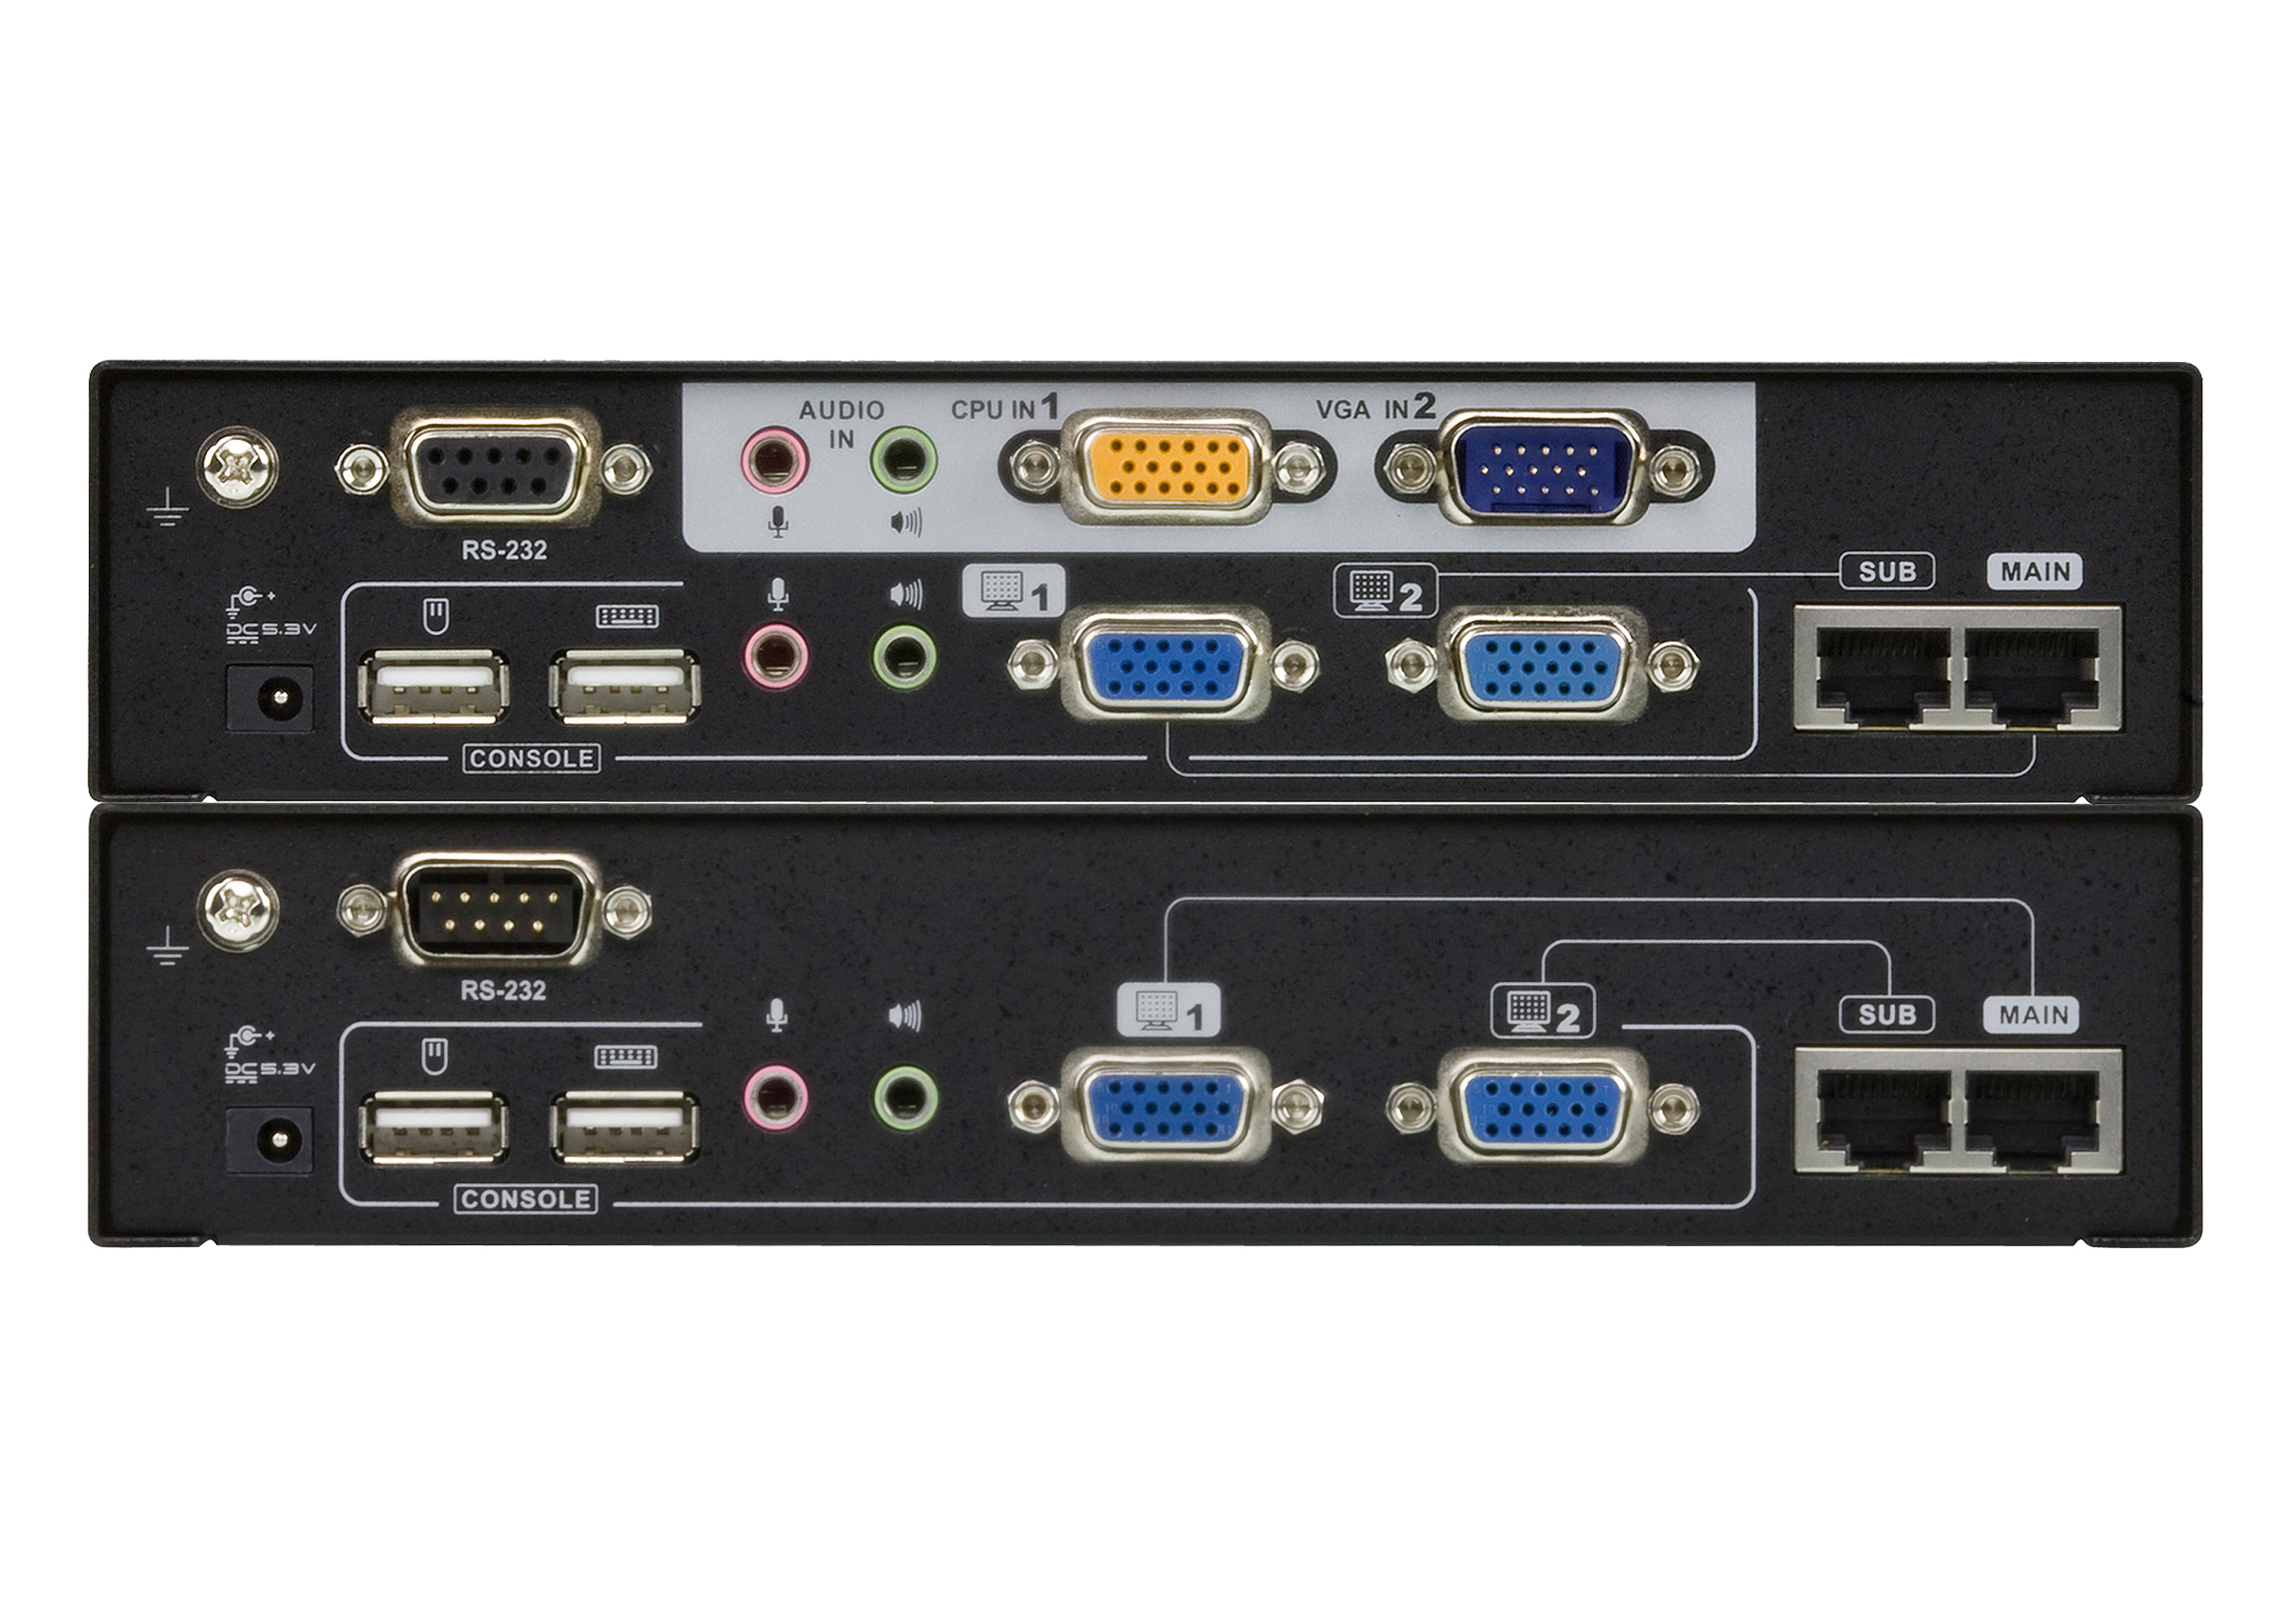 USB VGA Dual View Cat 5 KVM延長器 (1600 x 1200@150公尺)-2